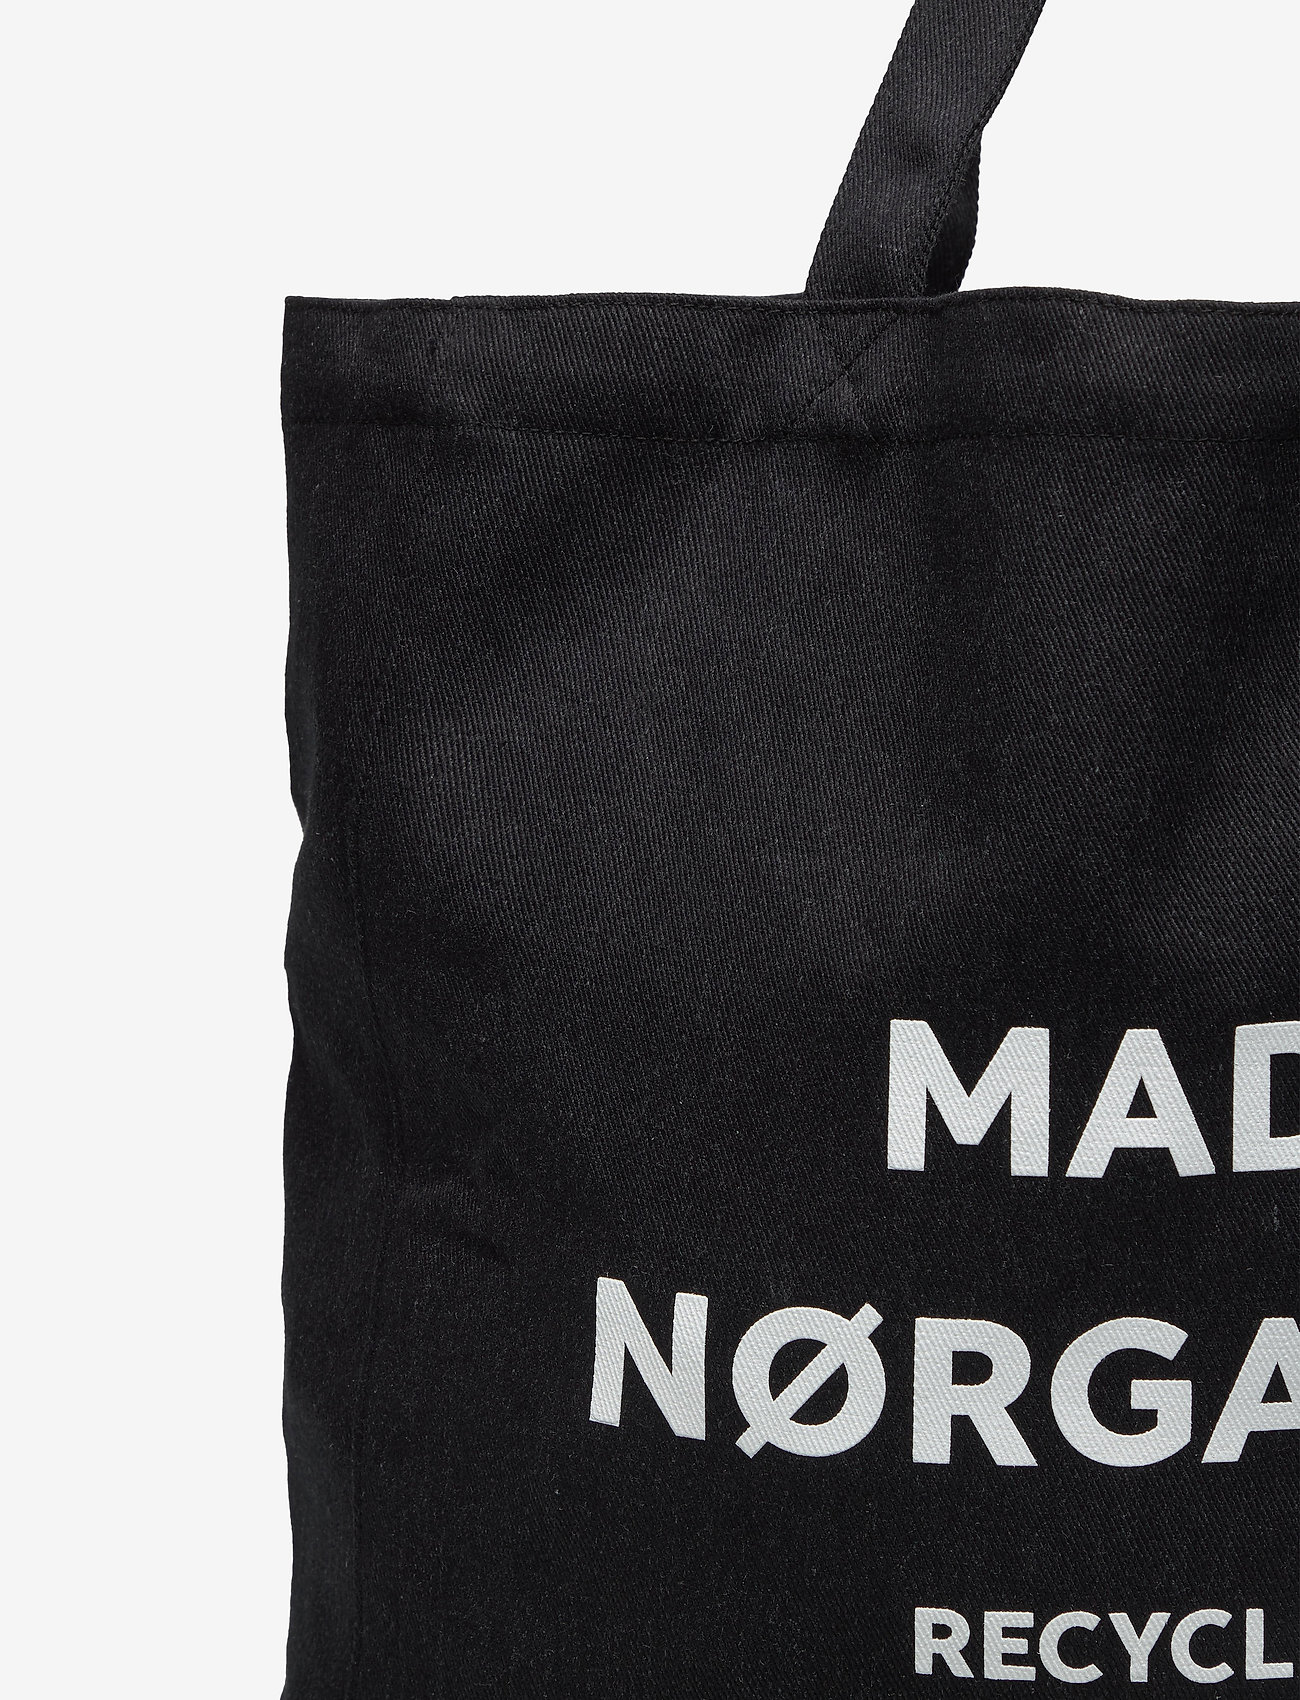 Mads Nørgaard Recycled Boutique Athene - Torby na zakupy BLACK/WHITE - Torby